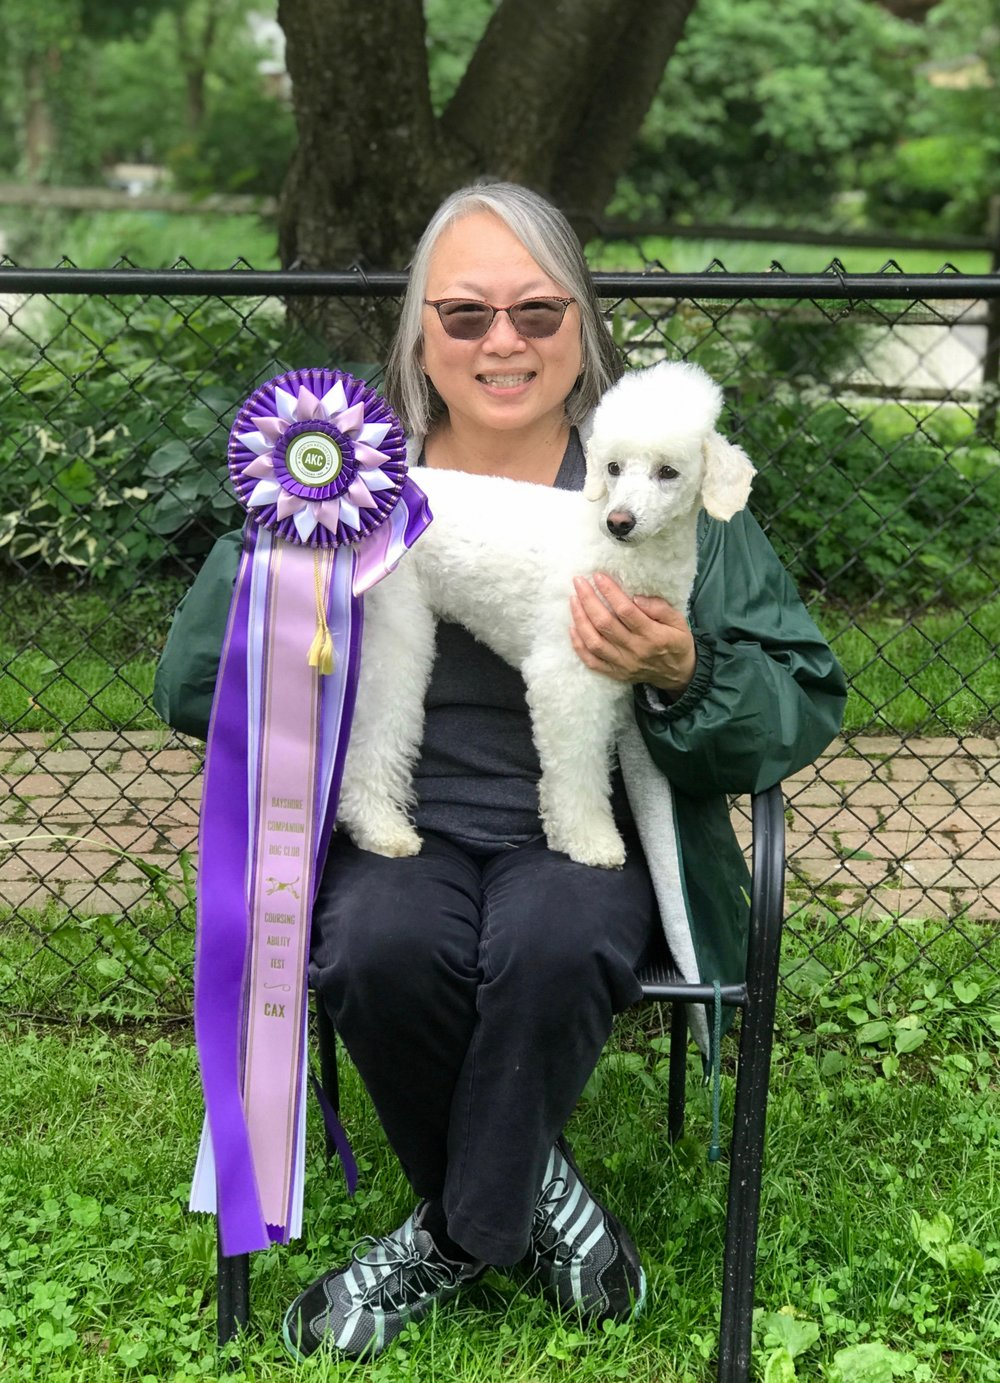 Nyssa earned her AKC Coursing Ability Excellent (CAX) title on Sunday, June 3, 2018 in East Freehold, NJ held by Bayshore Companion Dog Companion.